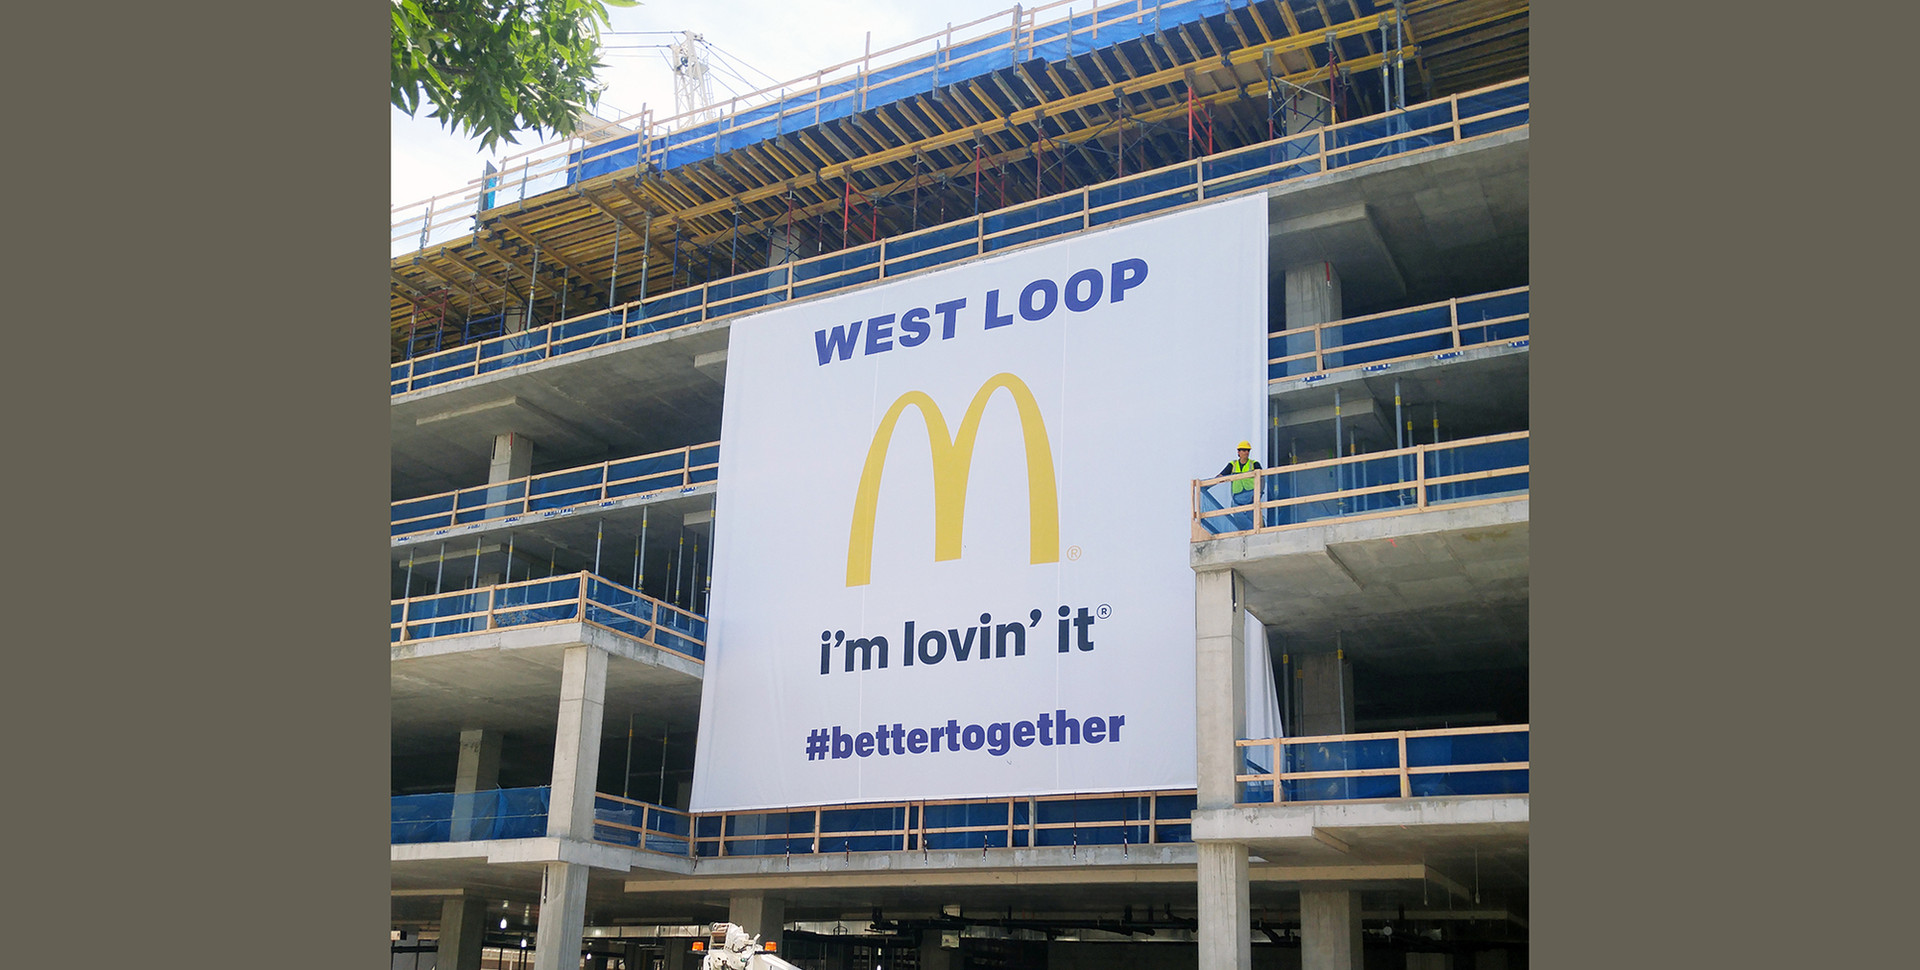 McDonalds_West_Loop_Angle_Banner_Ret.jpg